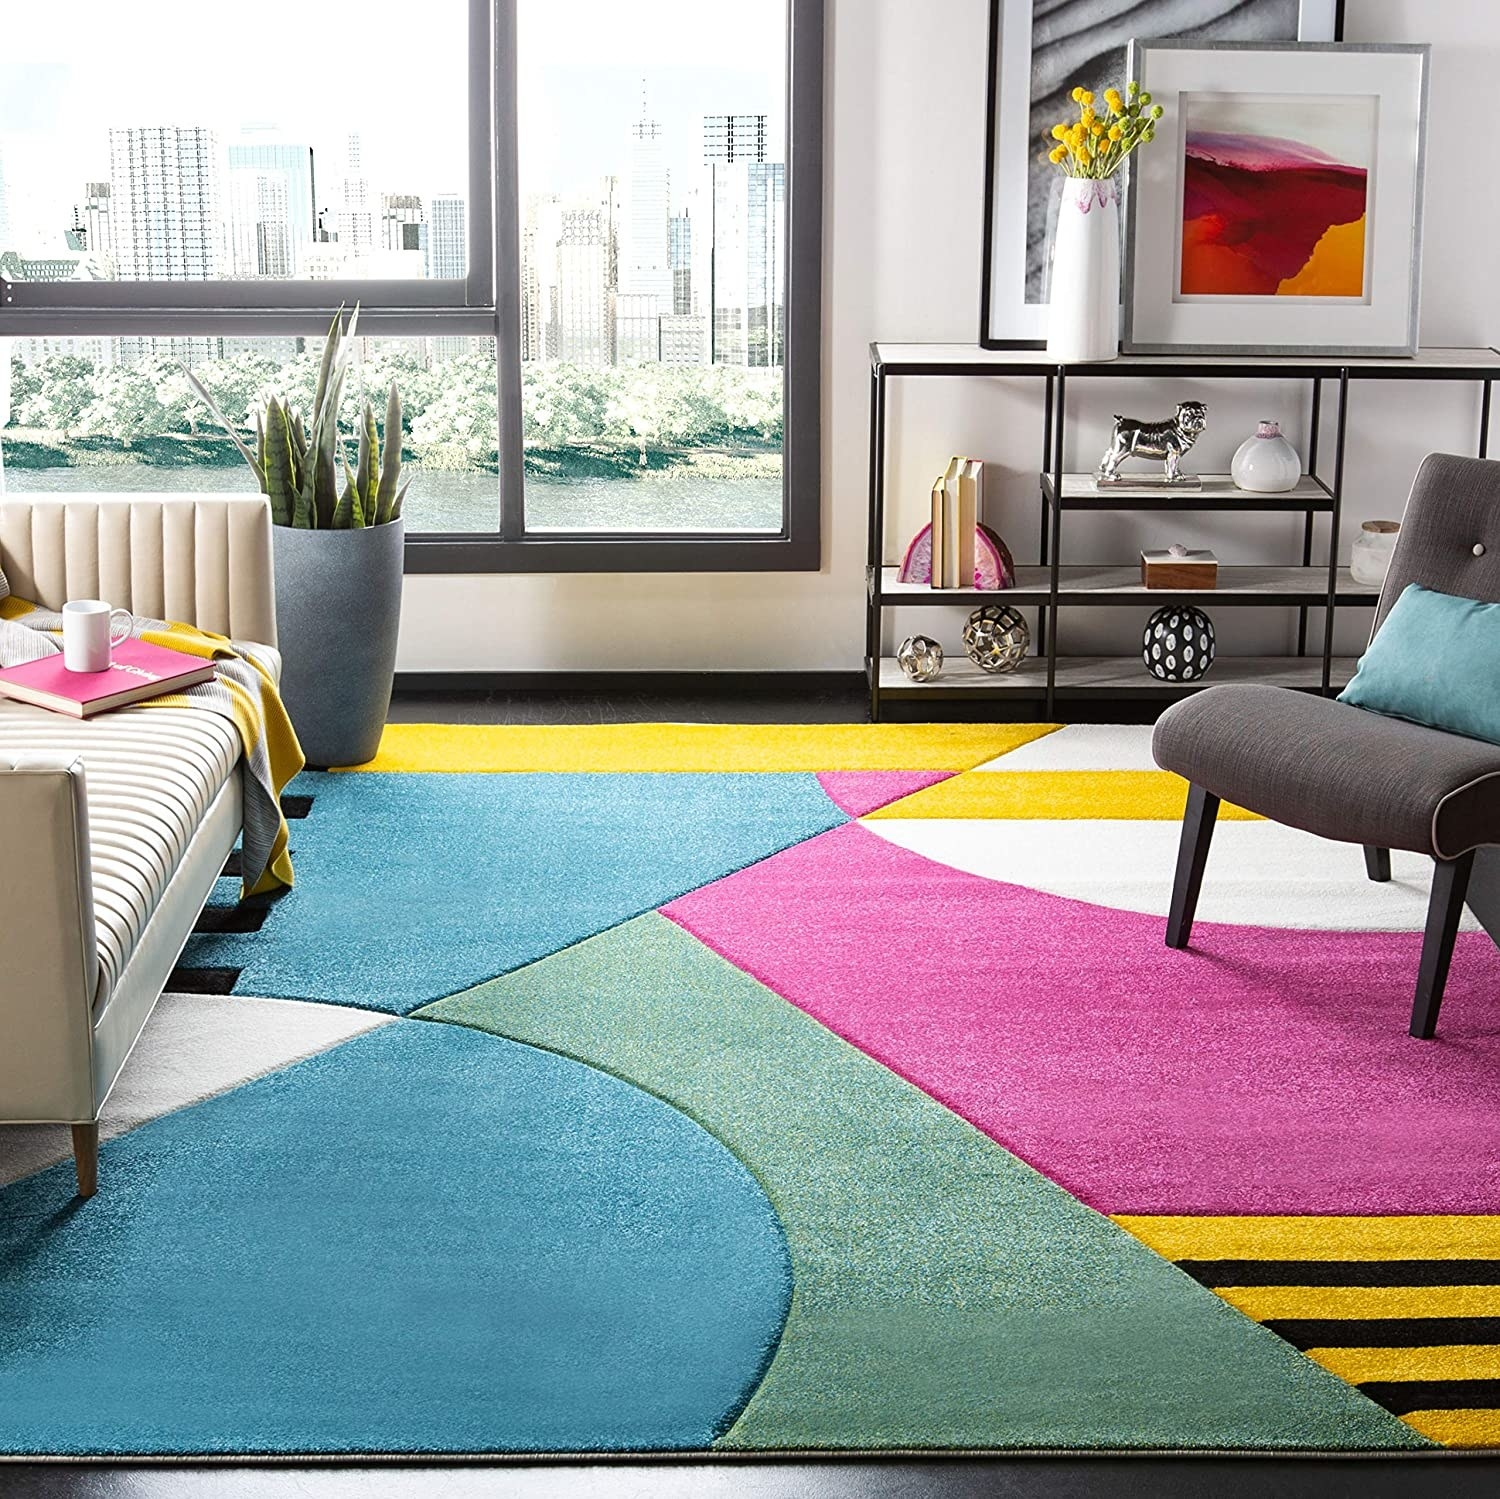 the bold area rug with colors that include blue green yellow black and pink in an abstract design